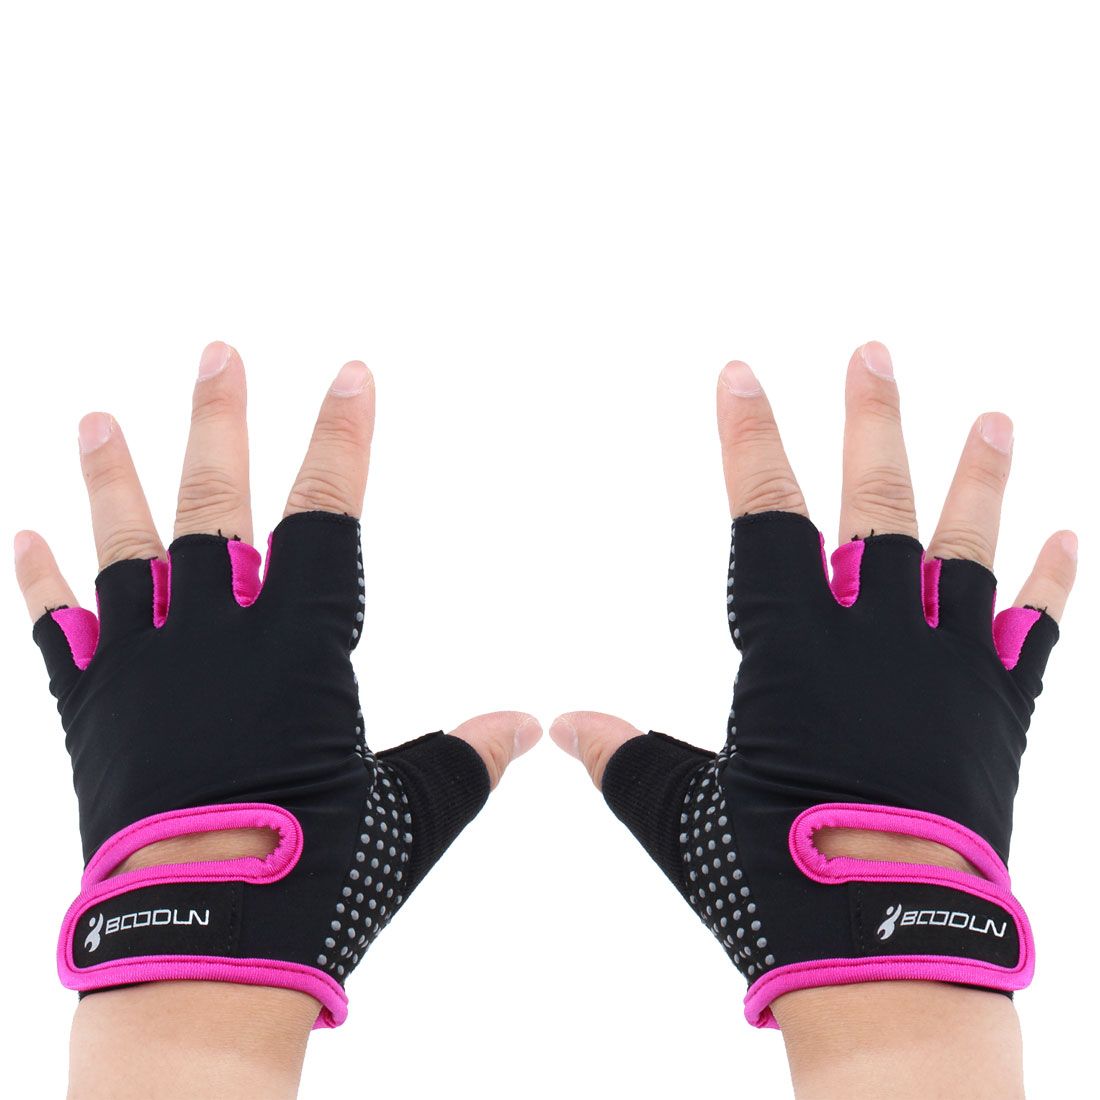 BOODUN Authorized Outdoor Weight Lifting Workout Training Adjustable Half Finger Fitness Gloves Purple L Size Pair